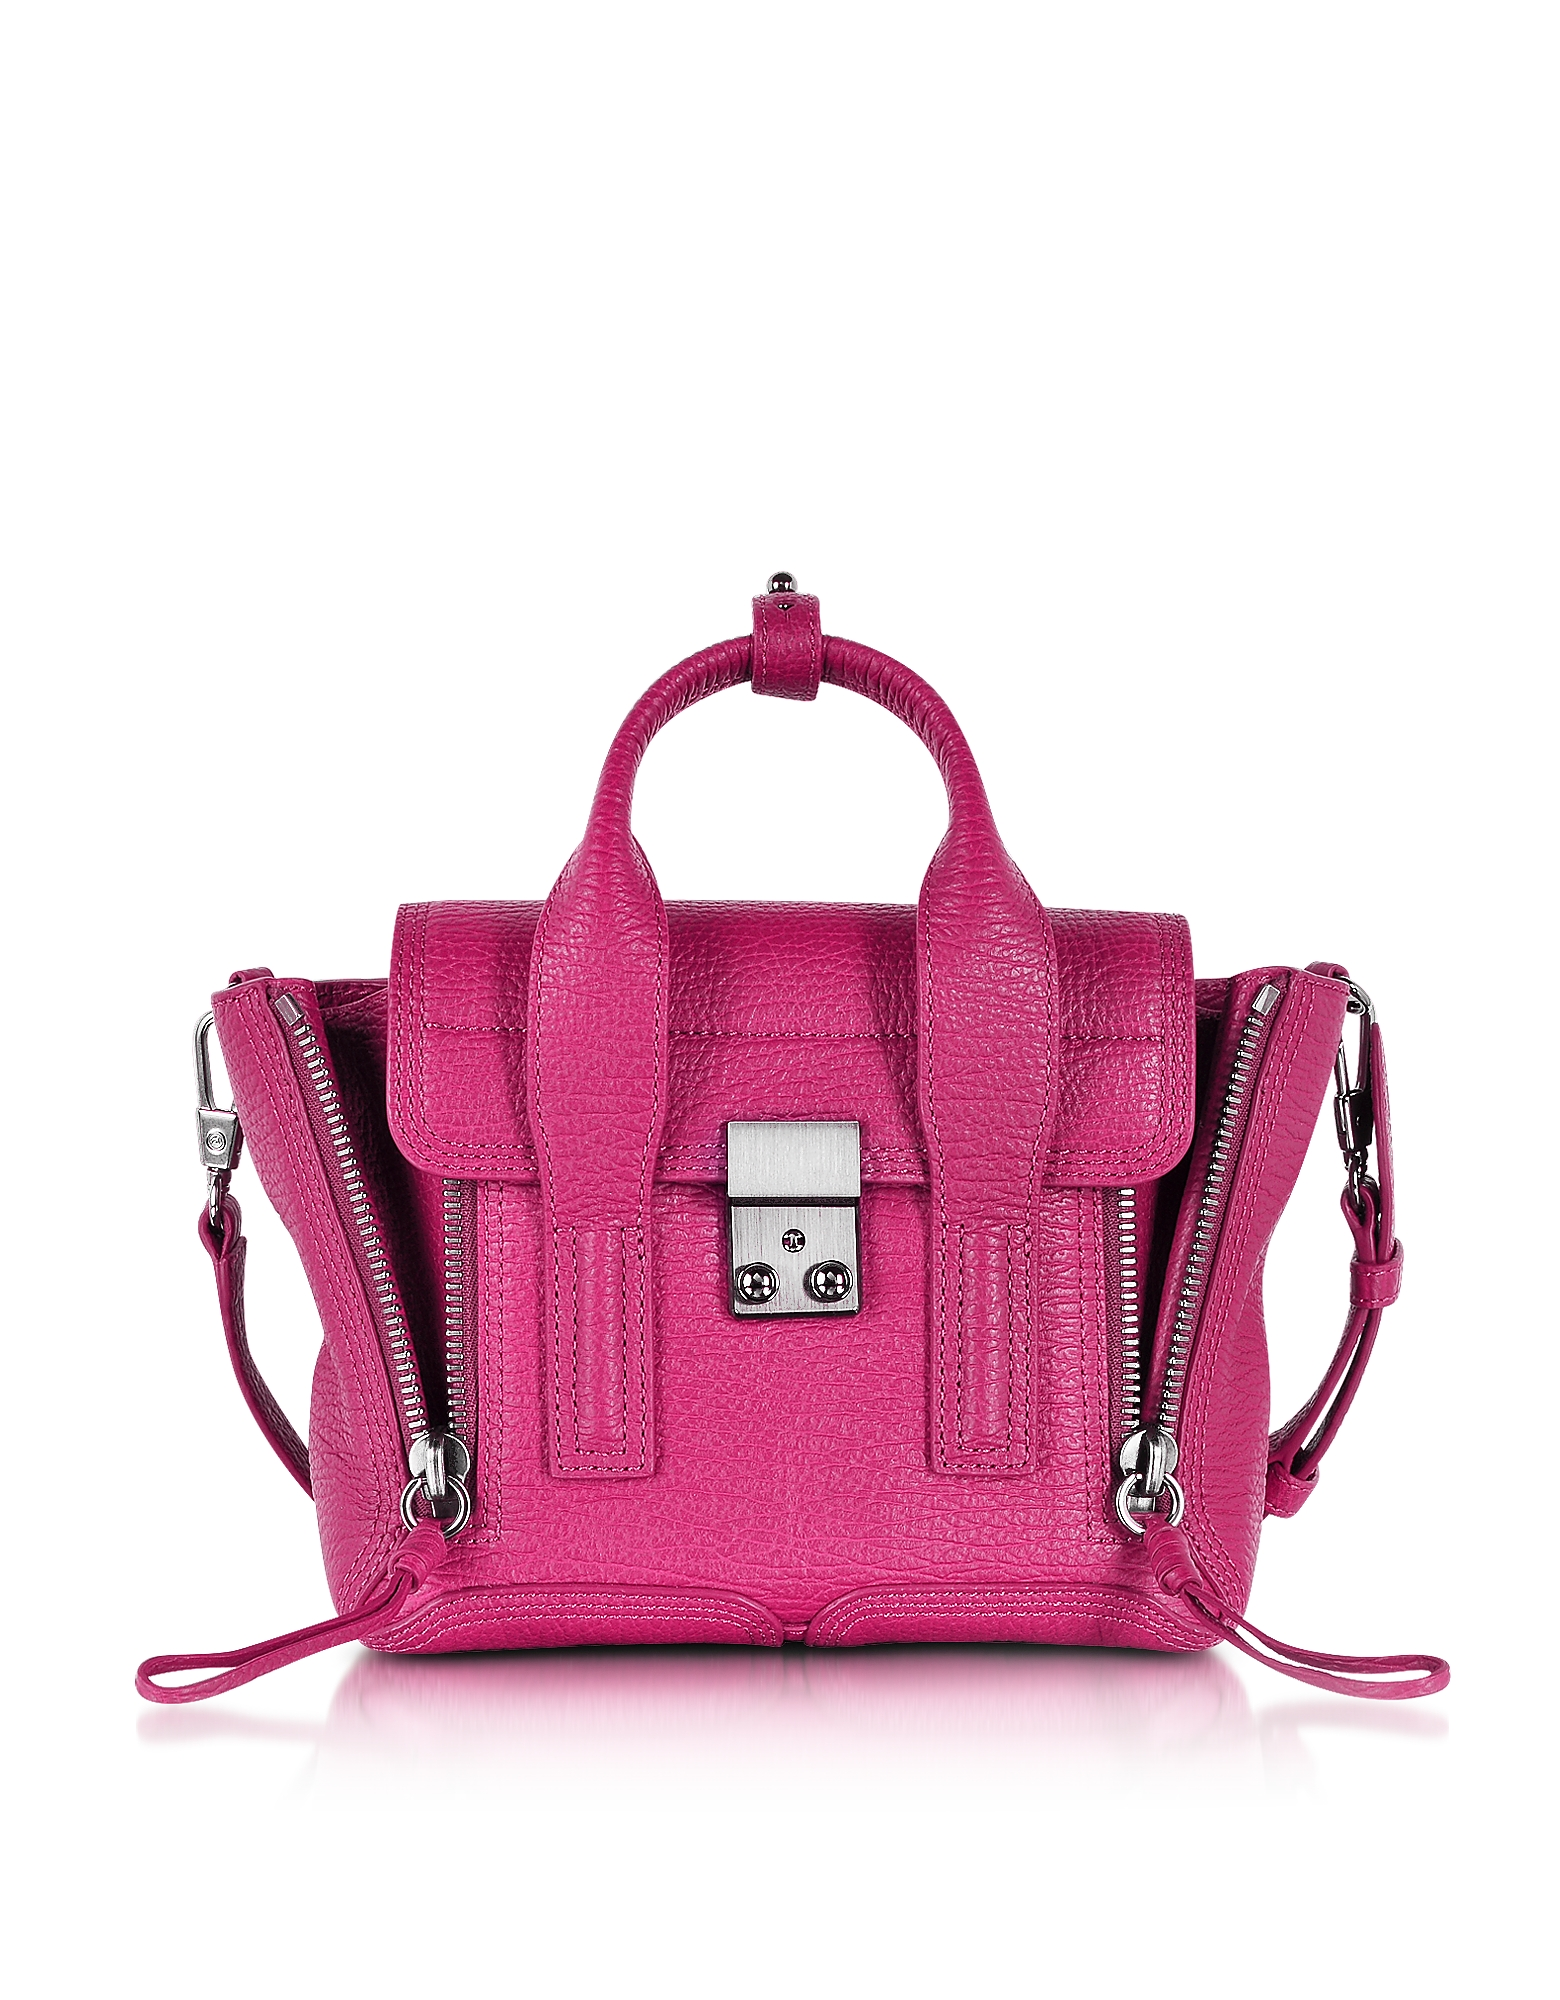 3.1 Phillip Lim Handbags, Pashli Magenta Leather Mini Satchel